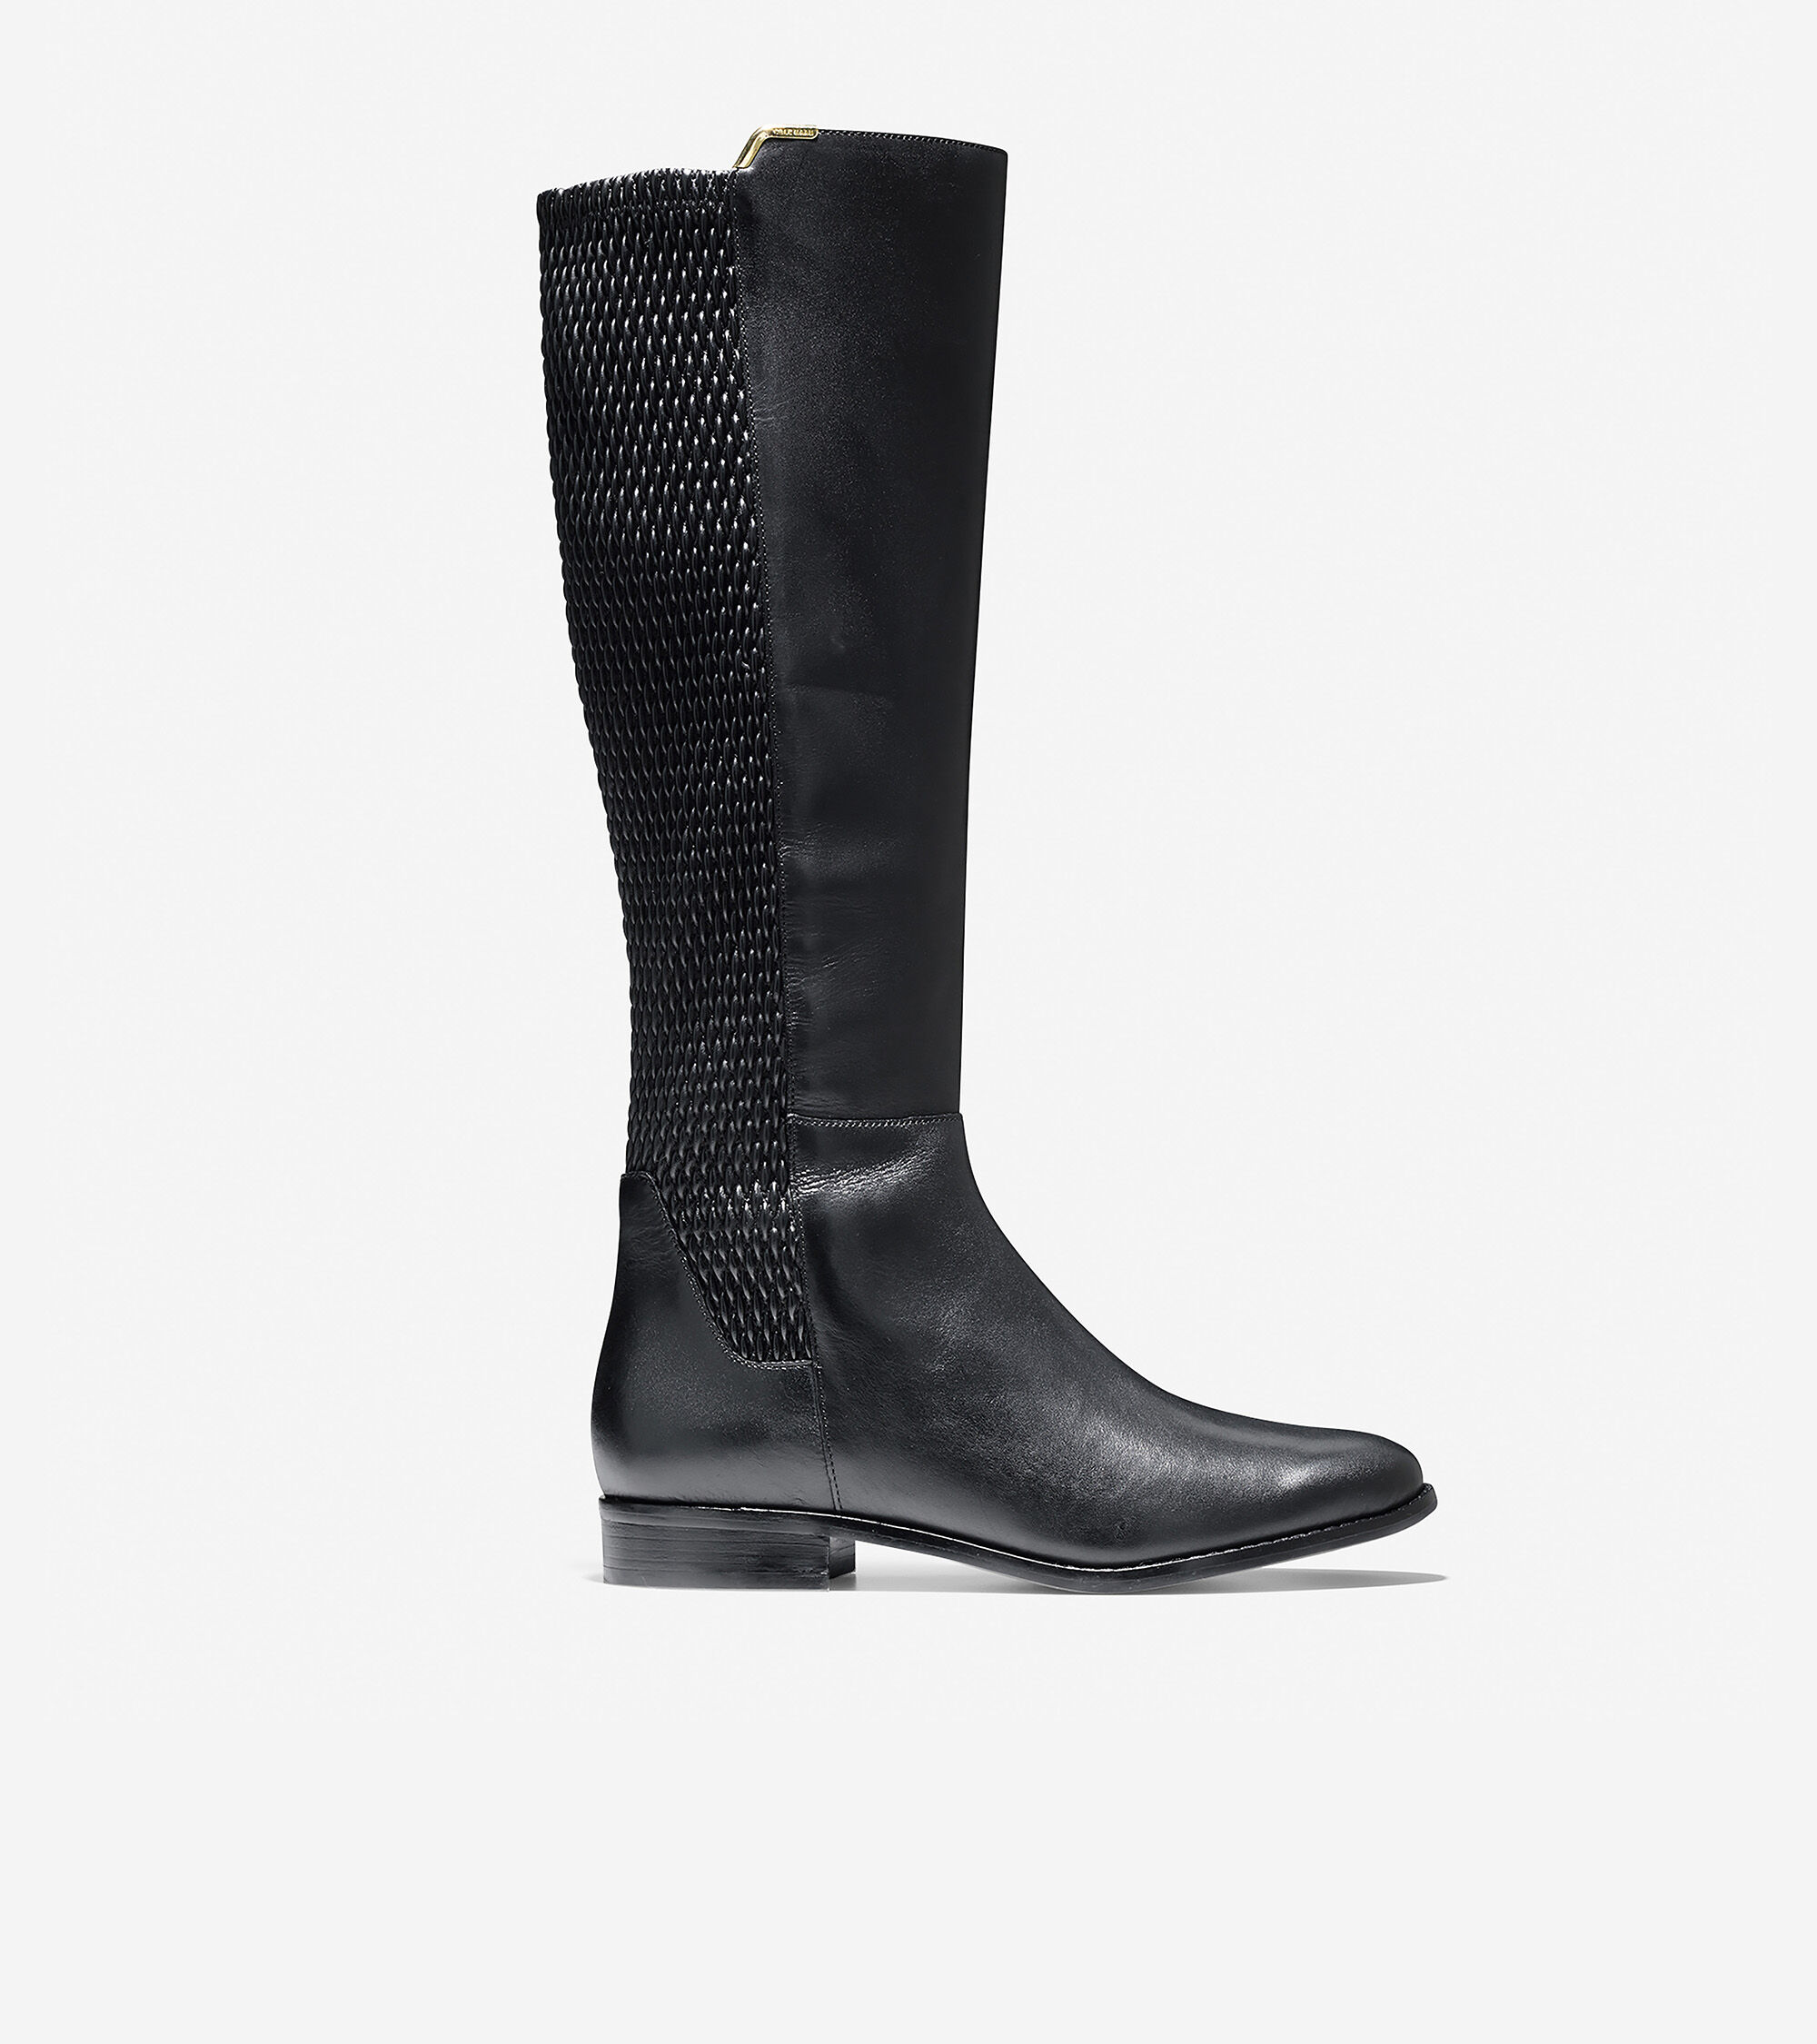 5eb20b2ccb4 Women s Rockland Boots in Black Leather